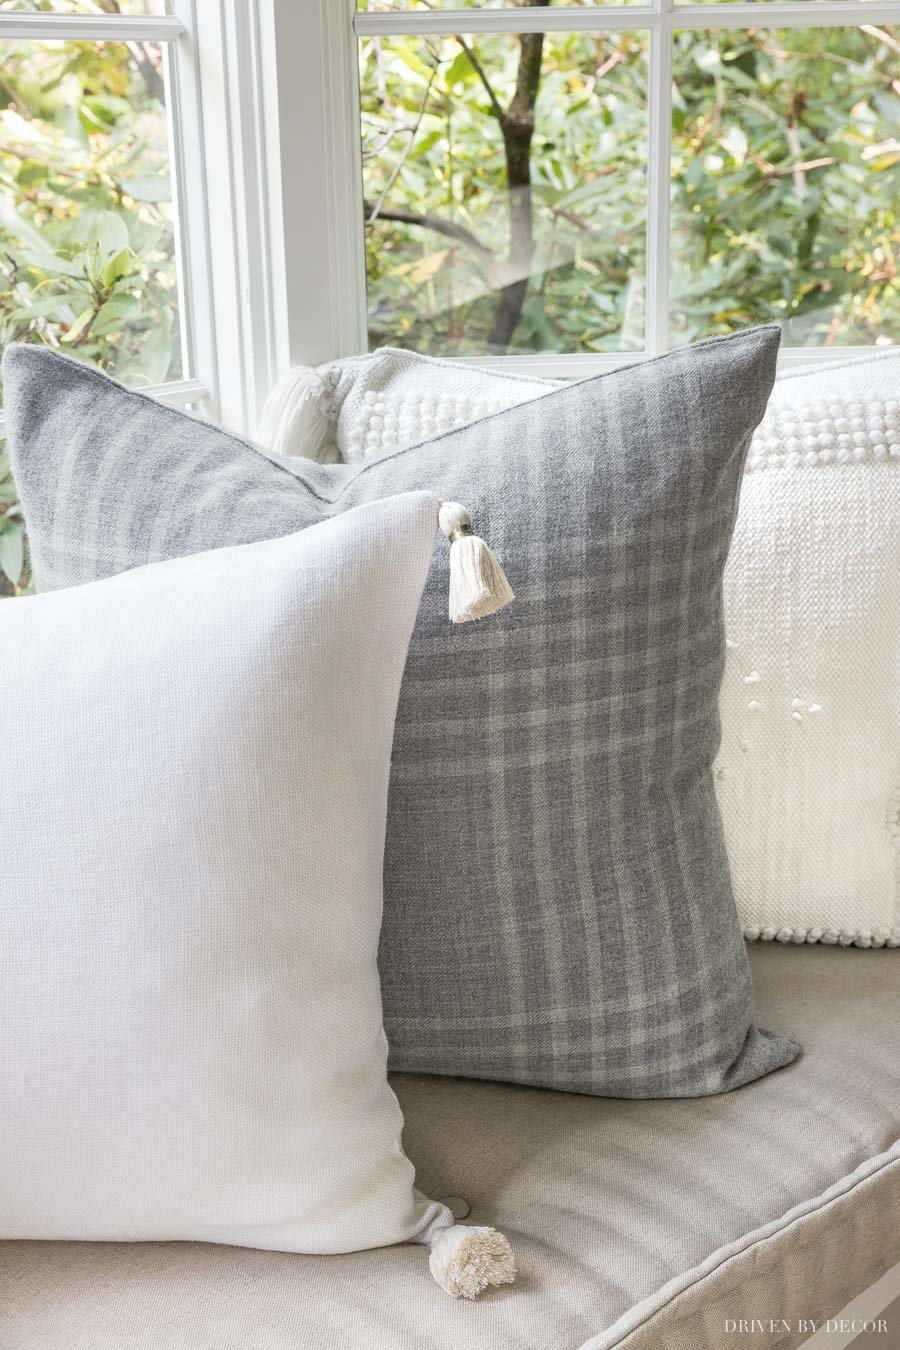 So obsessed in with gorgeous pillows!! The cream tassel end pillows go with everything!!